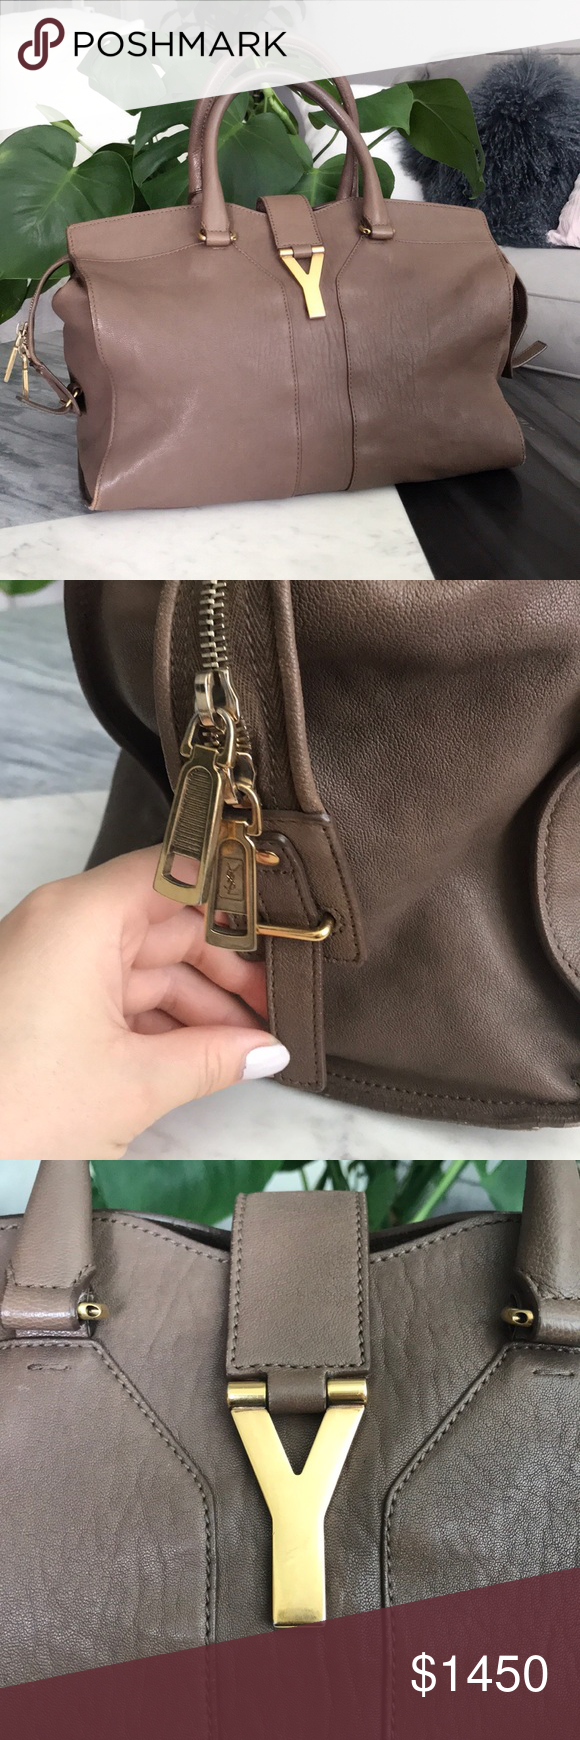 c6be47769250 💯Authentic Yves Saint Laurent BO CABAS CHYC Bag Large YSL leather (Calf)  Bag